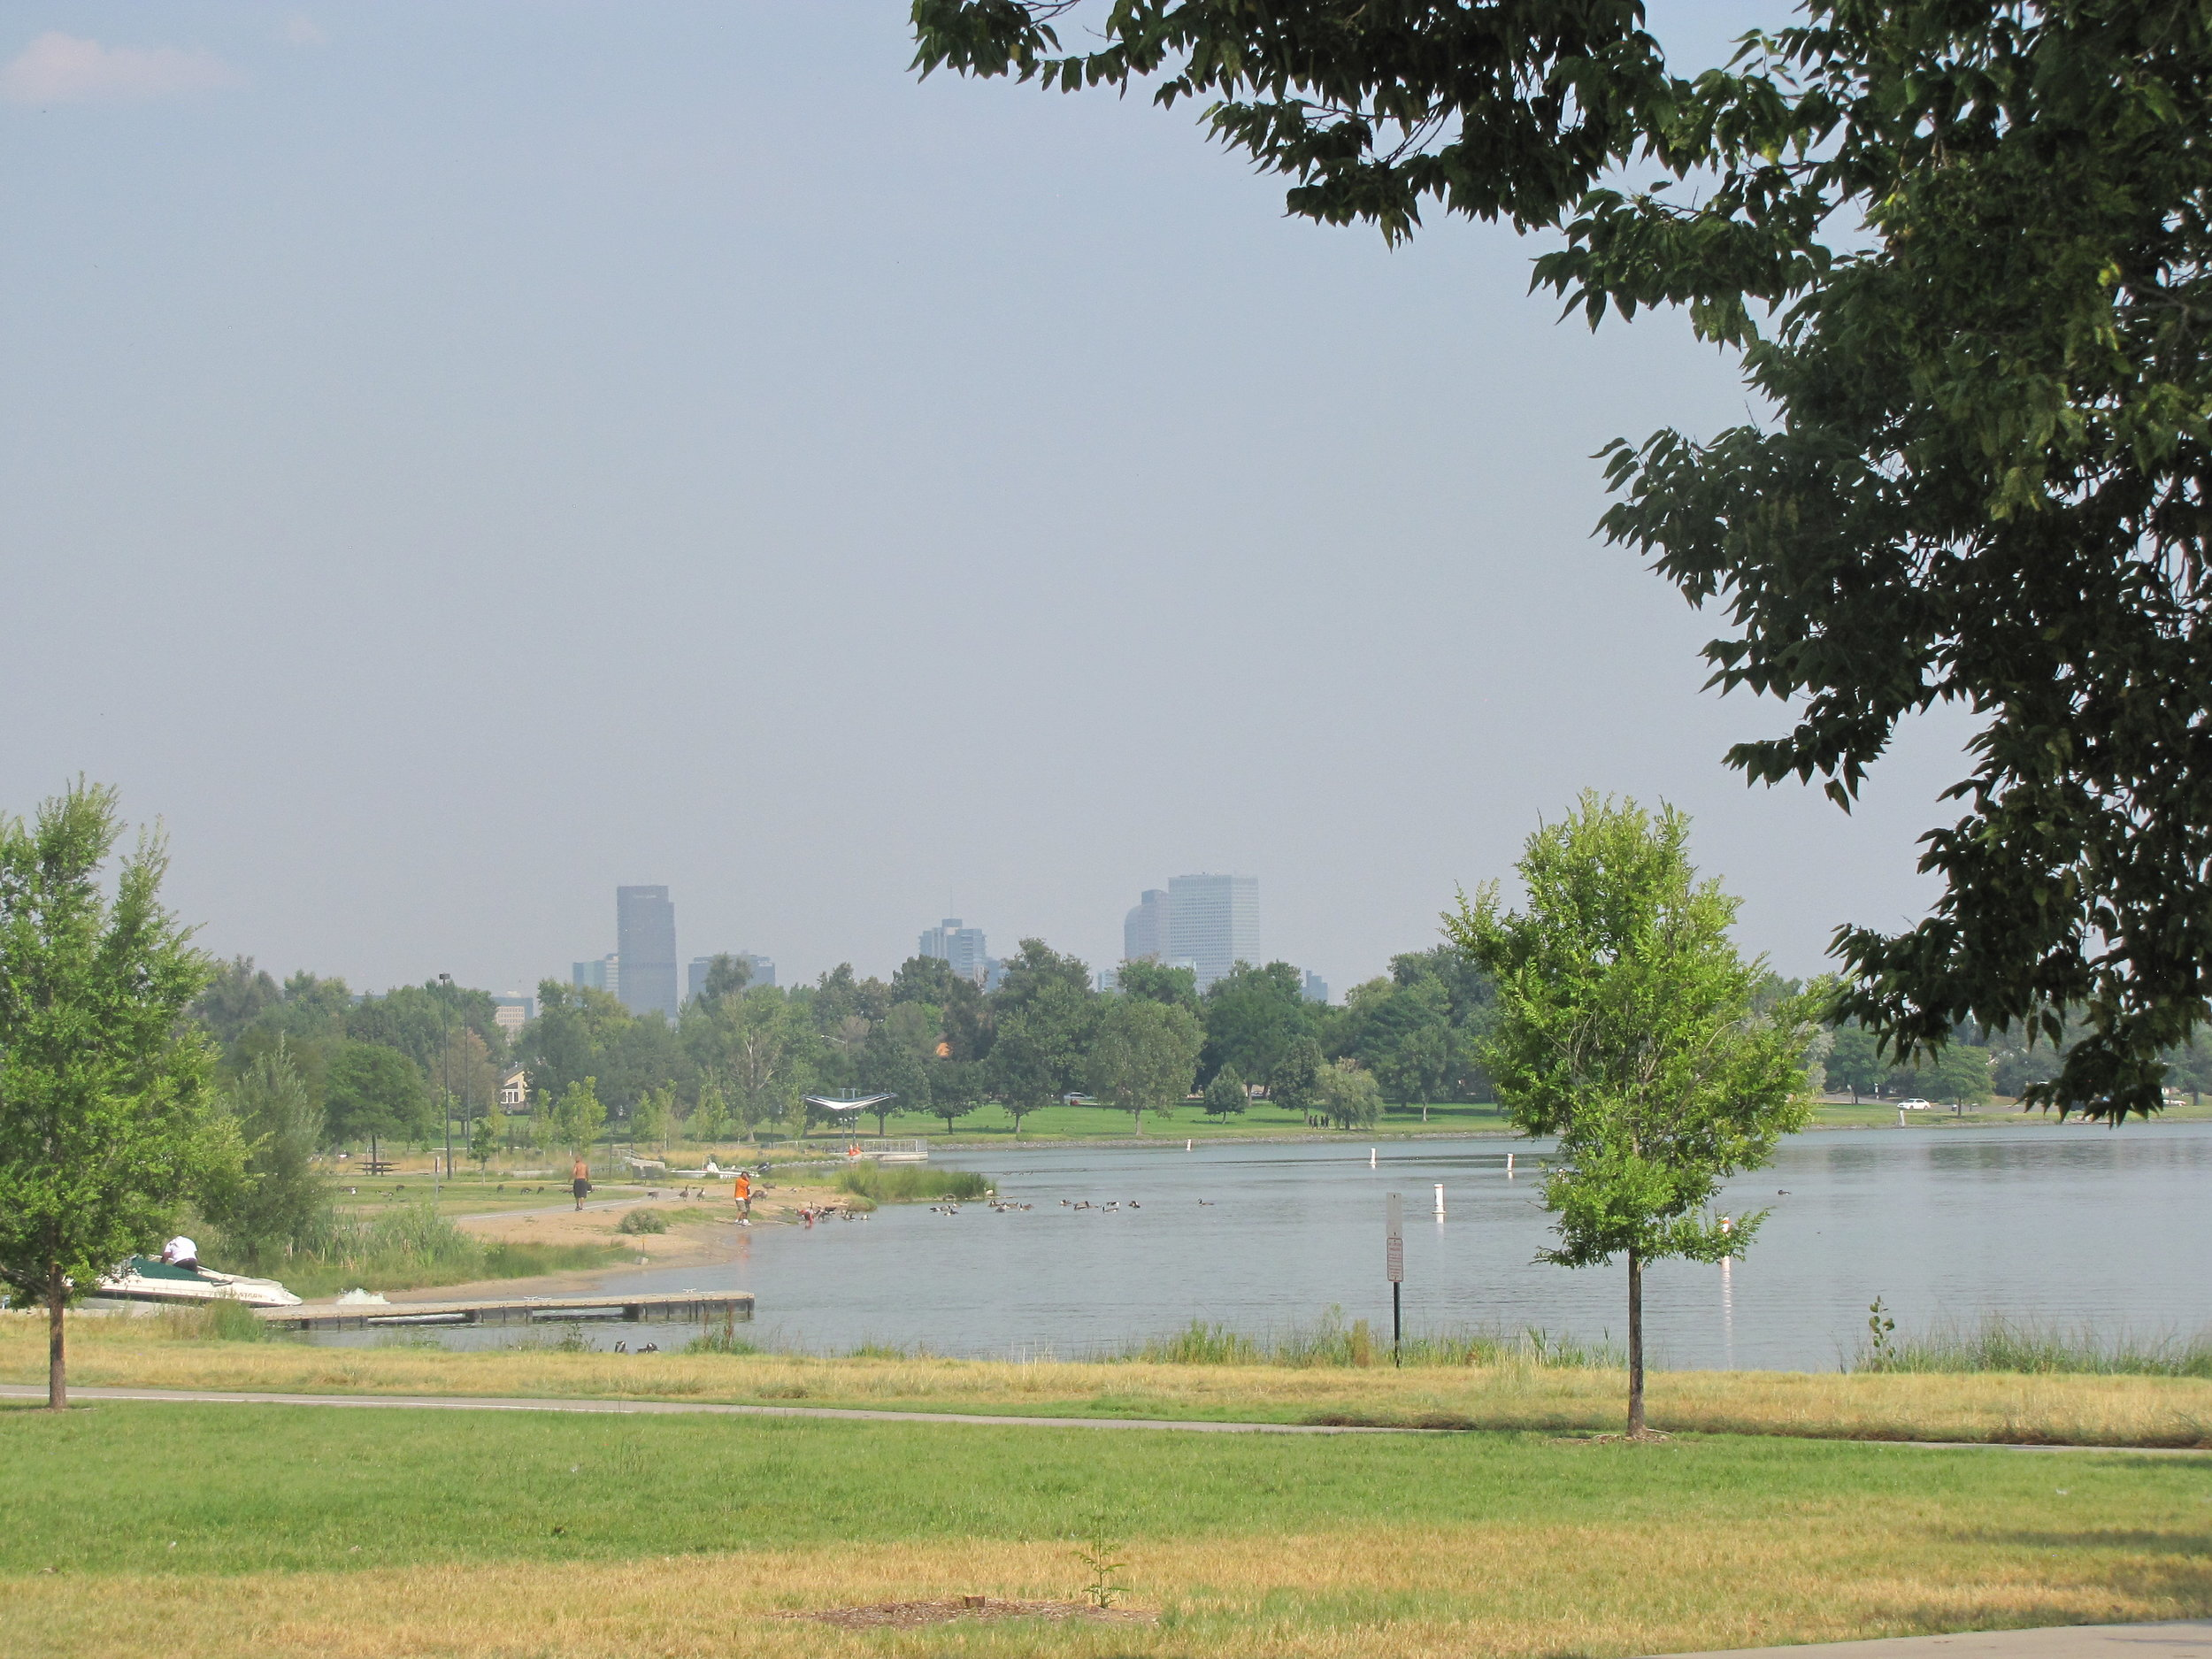 Just south of the Highlands, Sloan's Lake boasts one of Denver's most beautiful lakes and park featuring a three-mile bike and pedestrian path around the lake. Currently undergoing mass development, including the old St. Anthony's site.